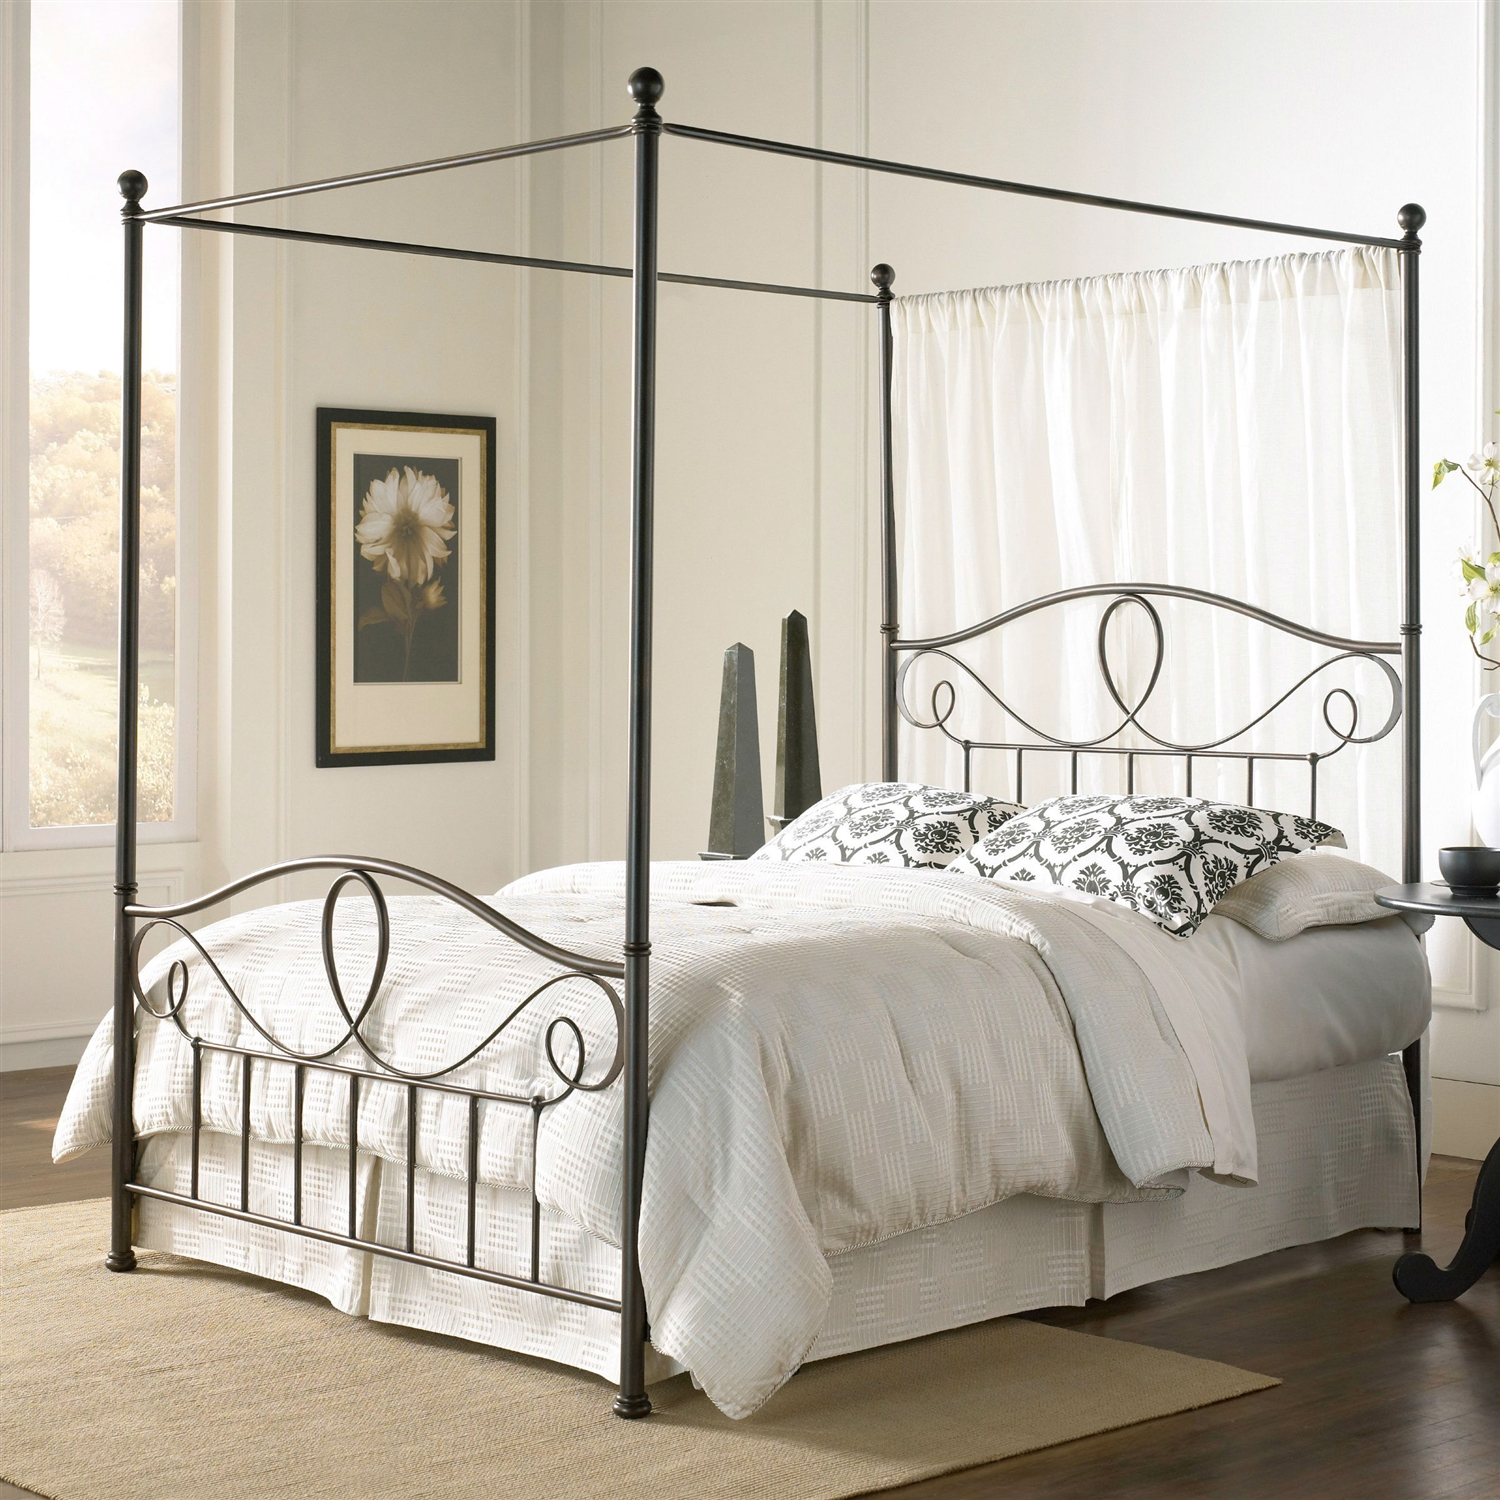 - Queen Size Metal Canopy Bed With Headboard And Footboard In Bronze